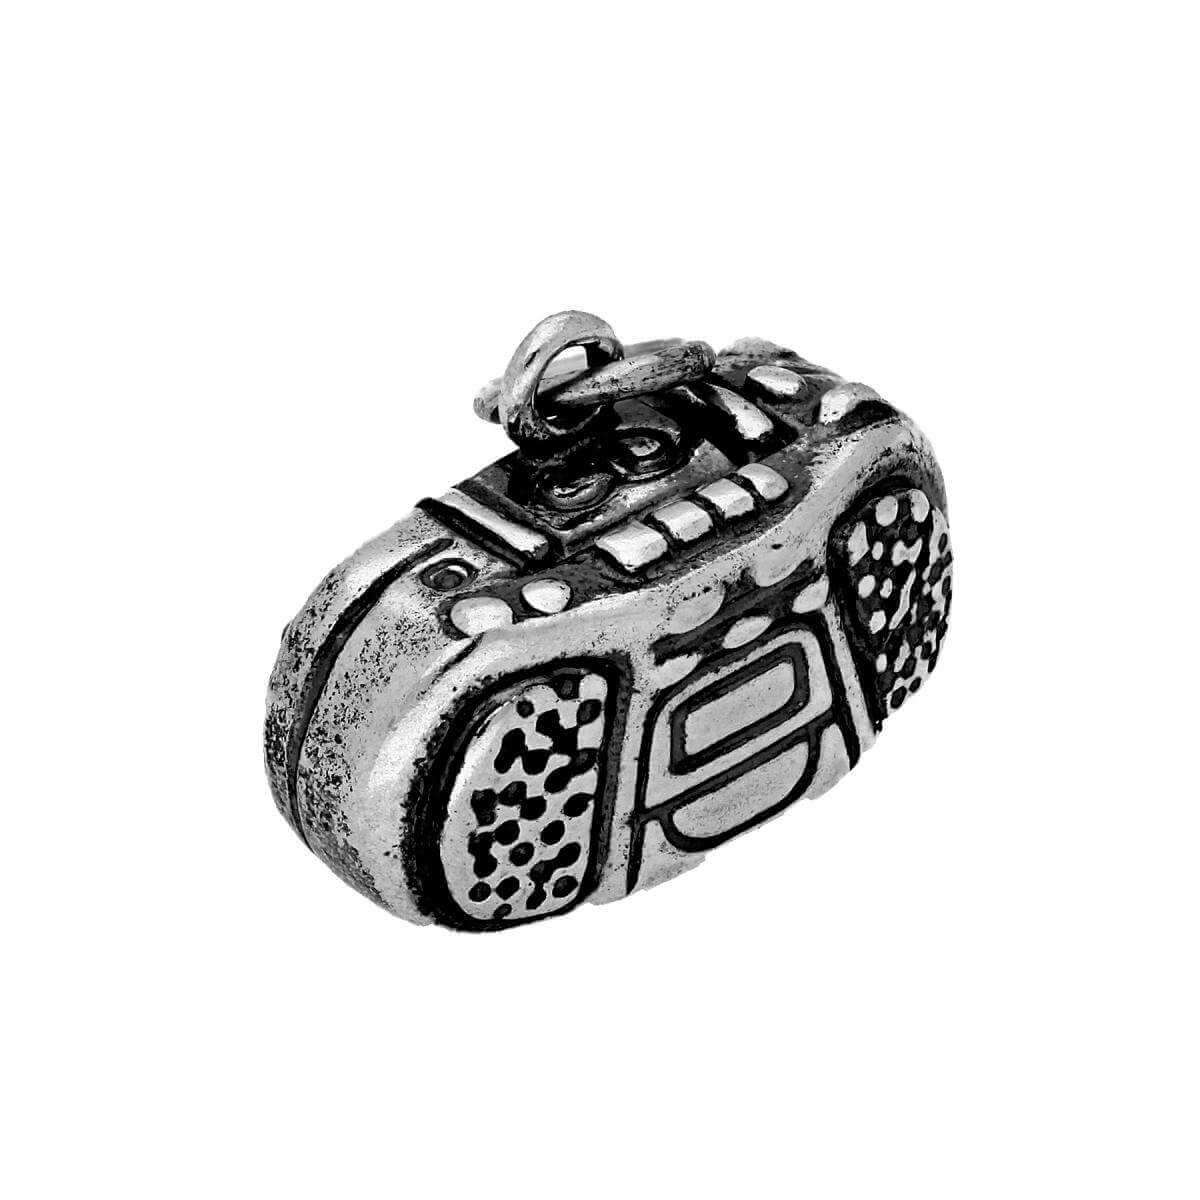 Sterling Silver Boombox CD Player Charm